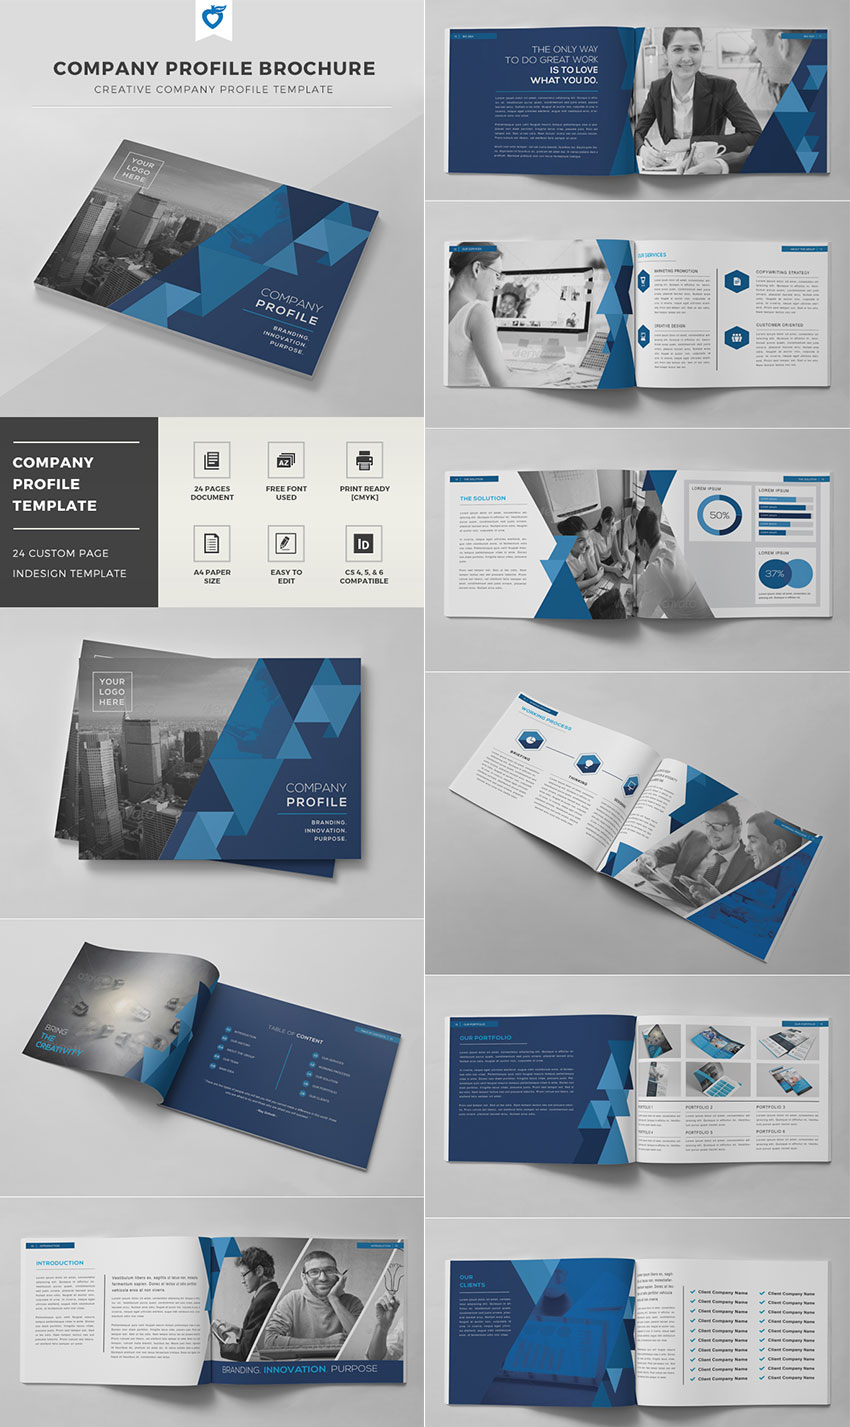 Company Profile Brochure - INDD Template